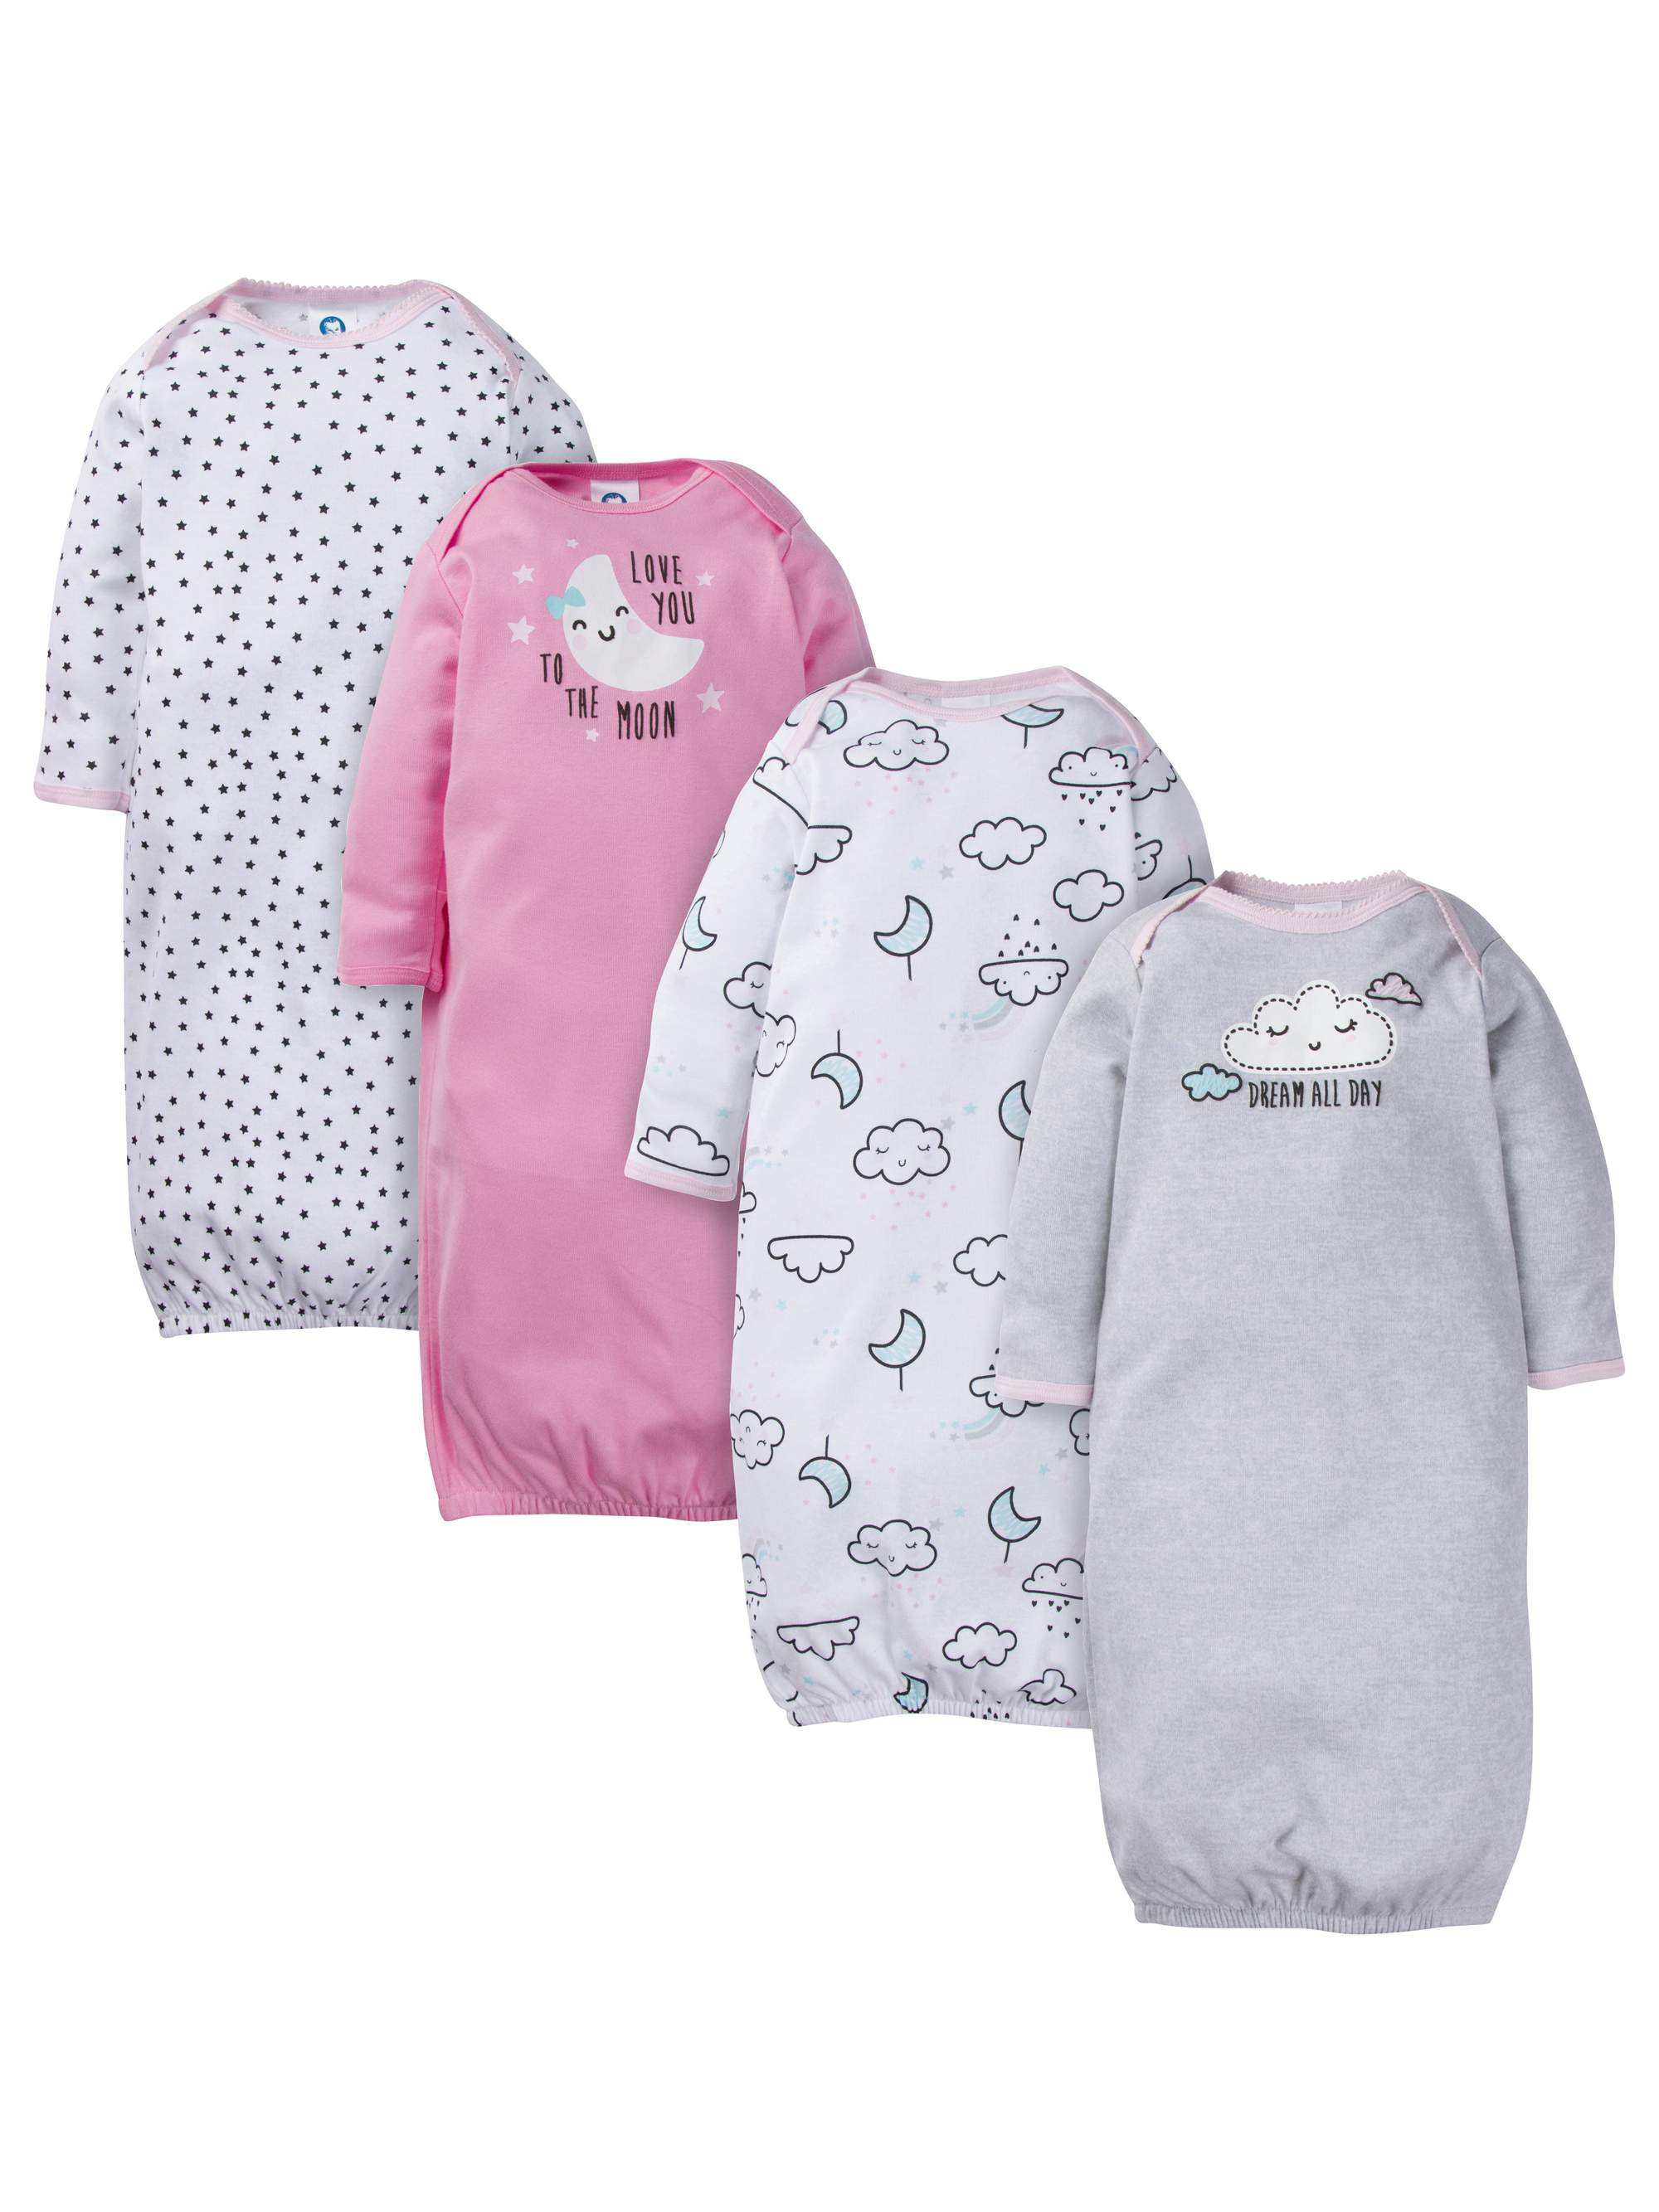 Assorted Lap Should Gown with Mitten Cuffs, 4pk (Baby Girl)